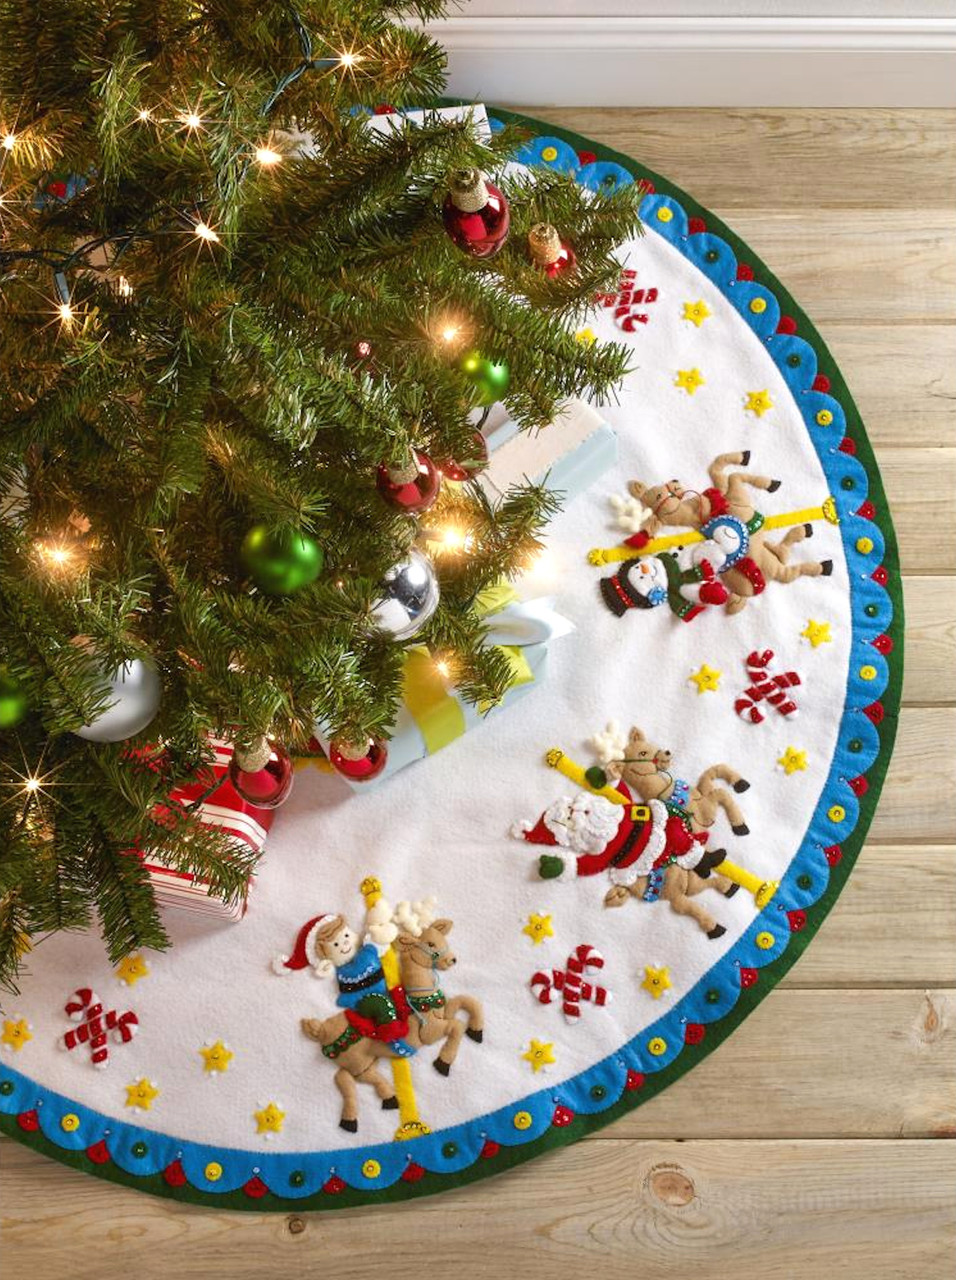 Plaid / Bucilla -  Carousel Santa Tree Skirt